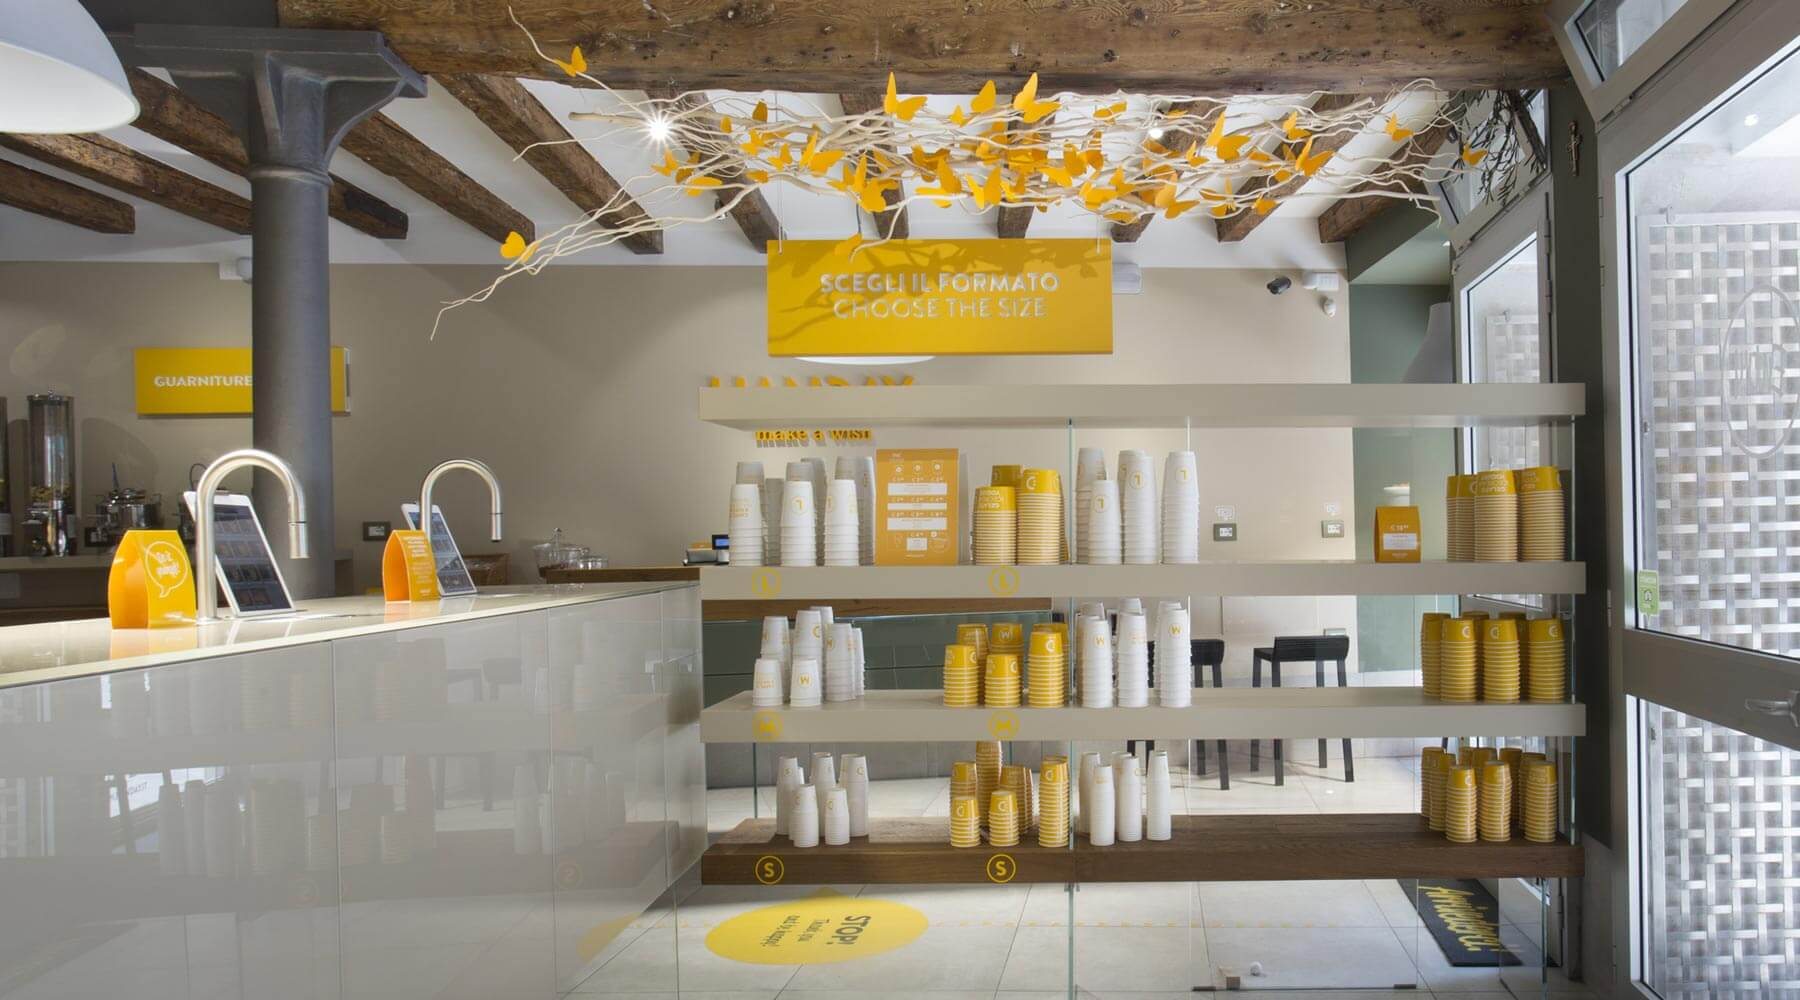 Gelateria handay mobili di design lago for Design di mobili korson